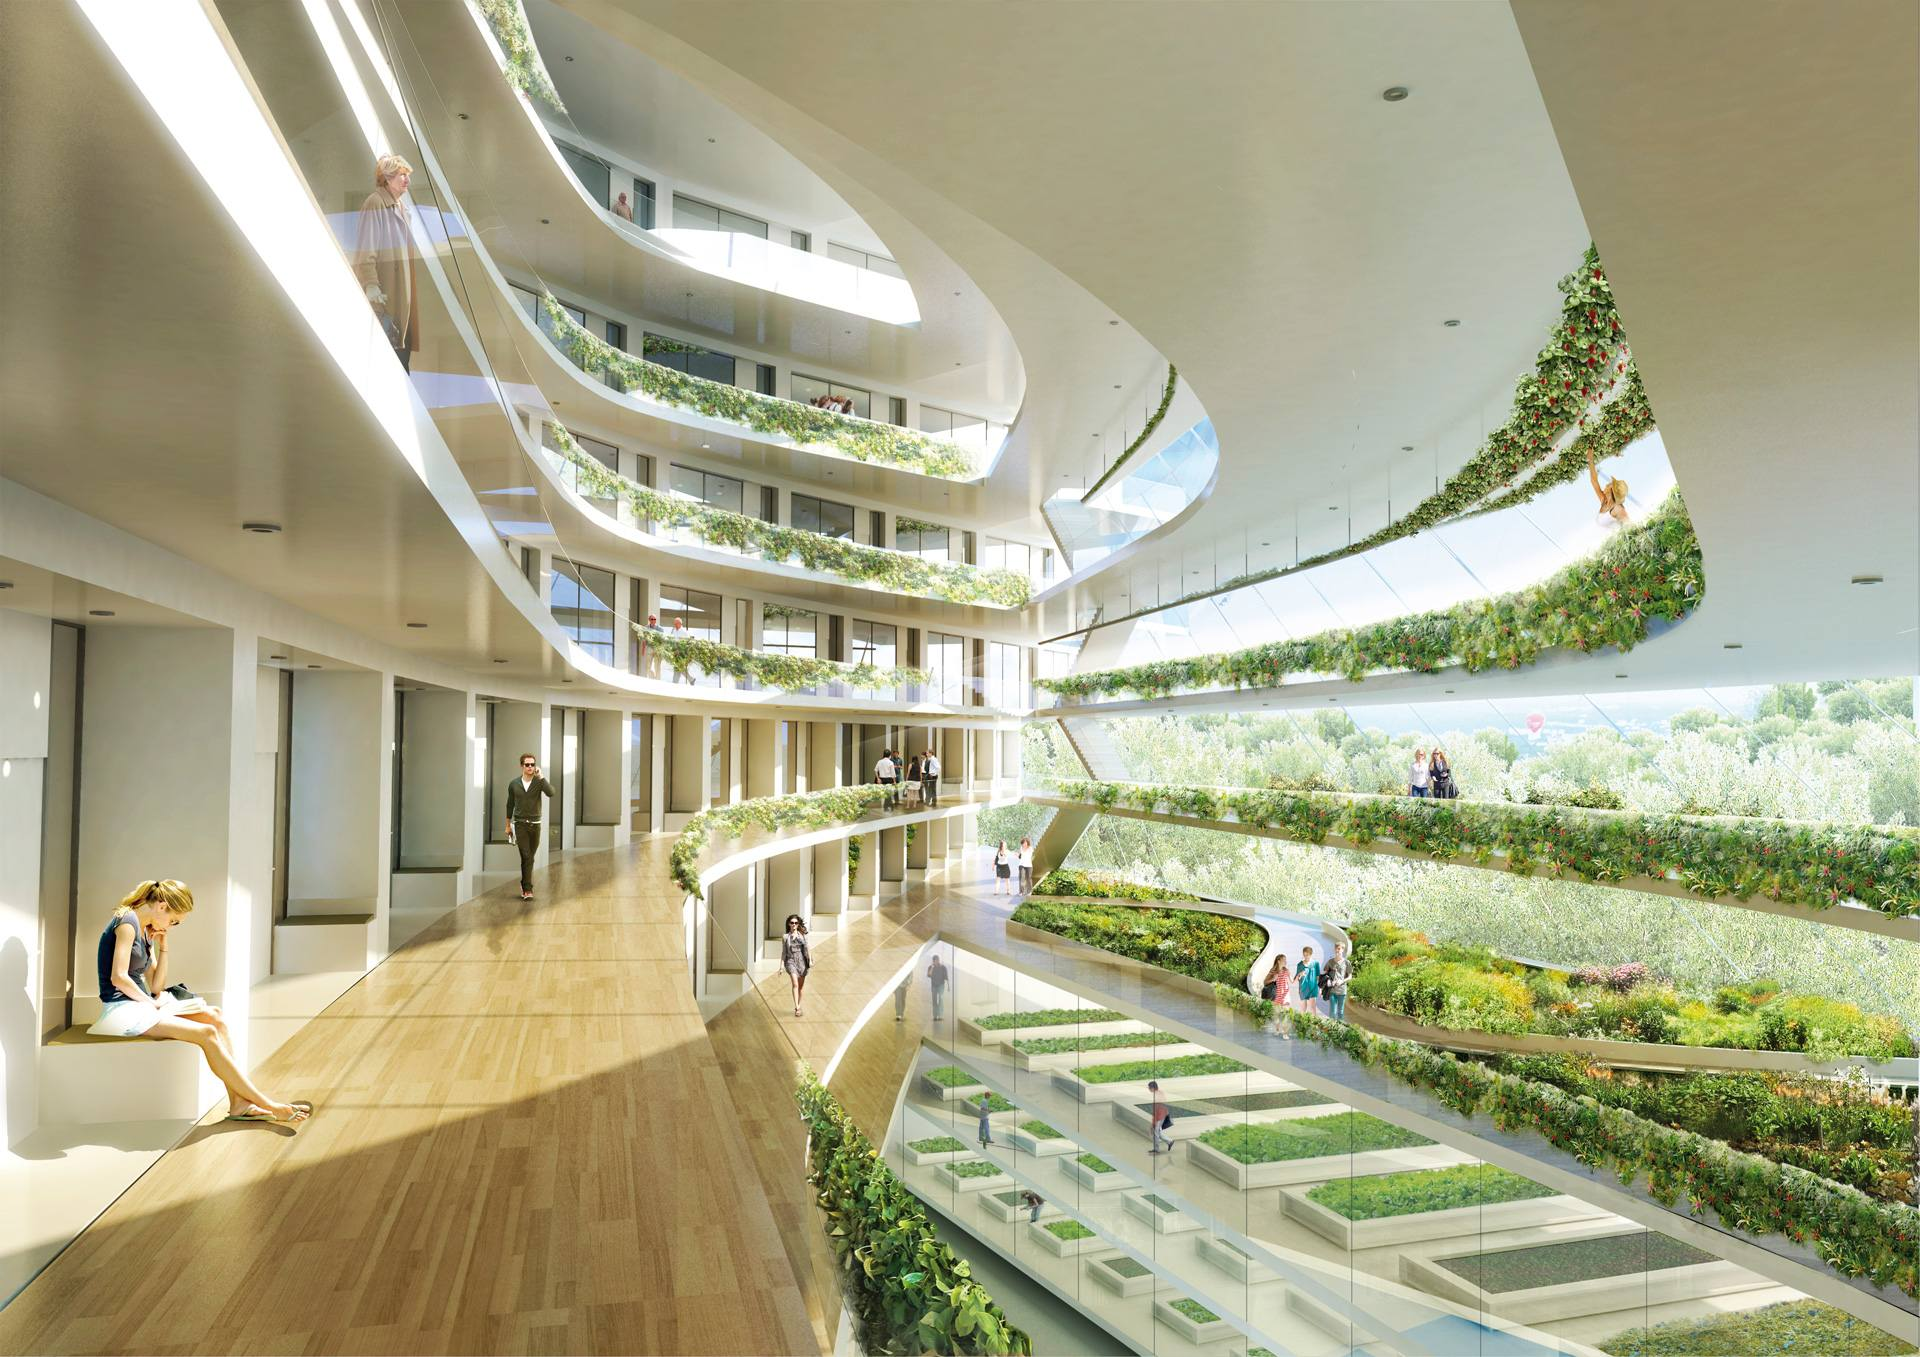 stockholm sustainable building modern interior architectural college 3xn vertical greenhouse sweden architects living exterior industrial arcs approach